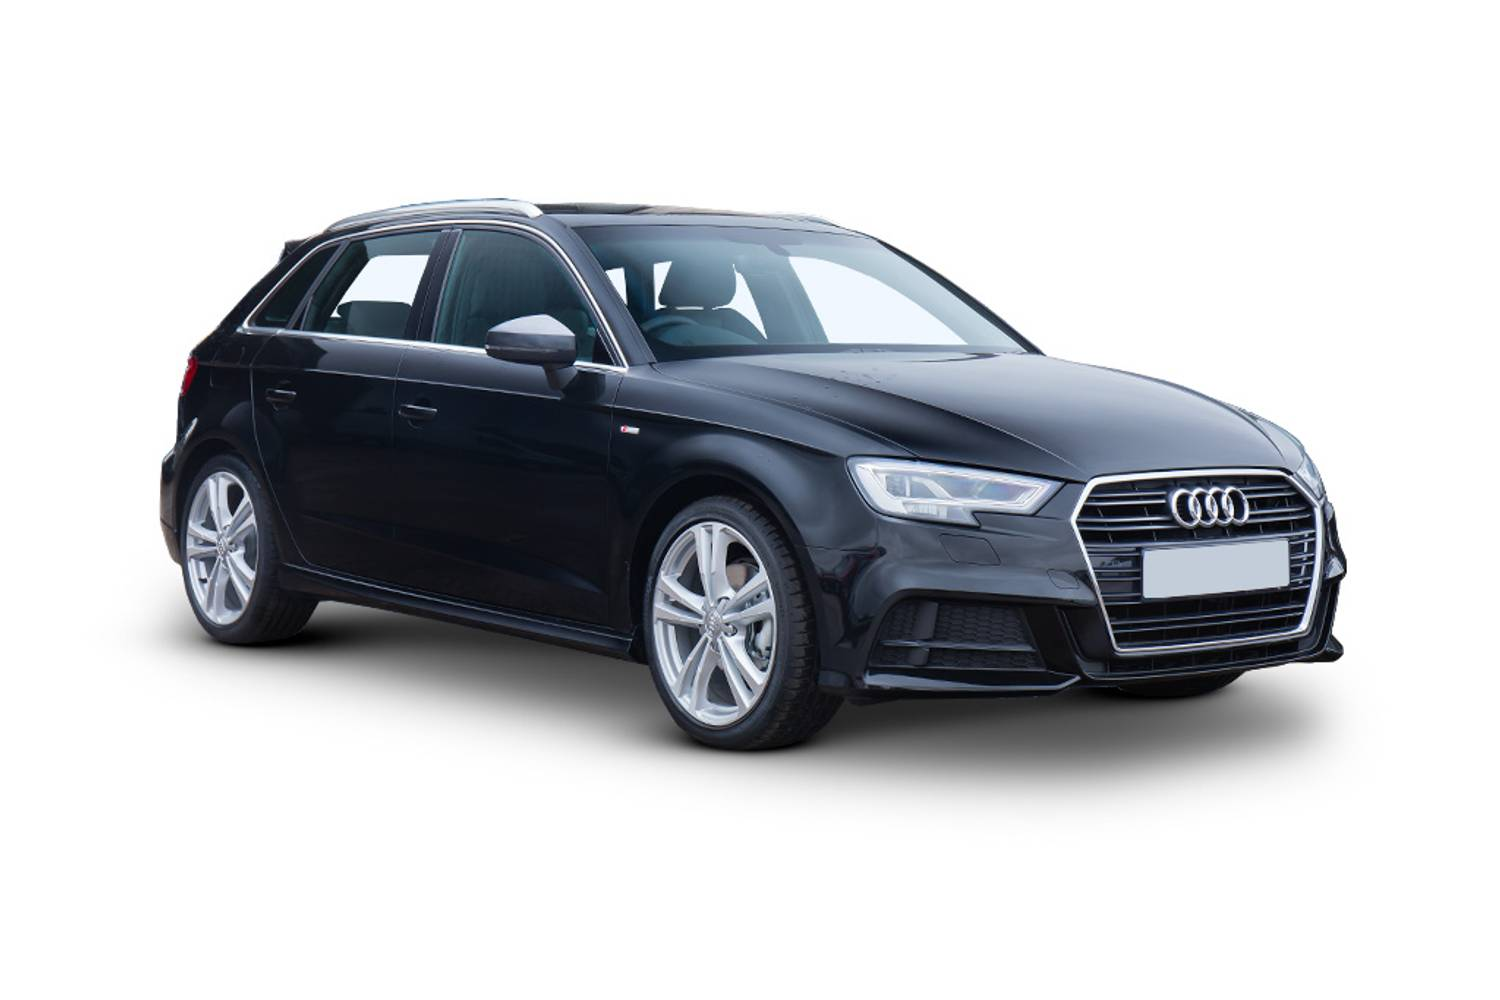 new audi a3 diesel sportback 2 0 tdi s line 5 door 2016. Black Bedroom Furniture Sets. Home Design Ideas